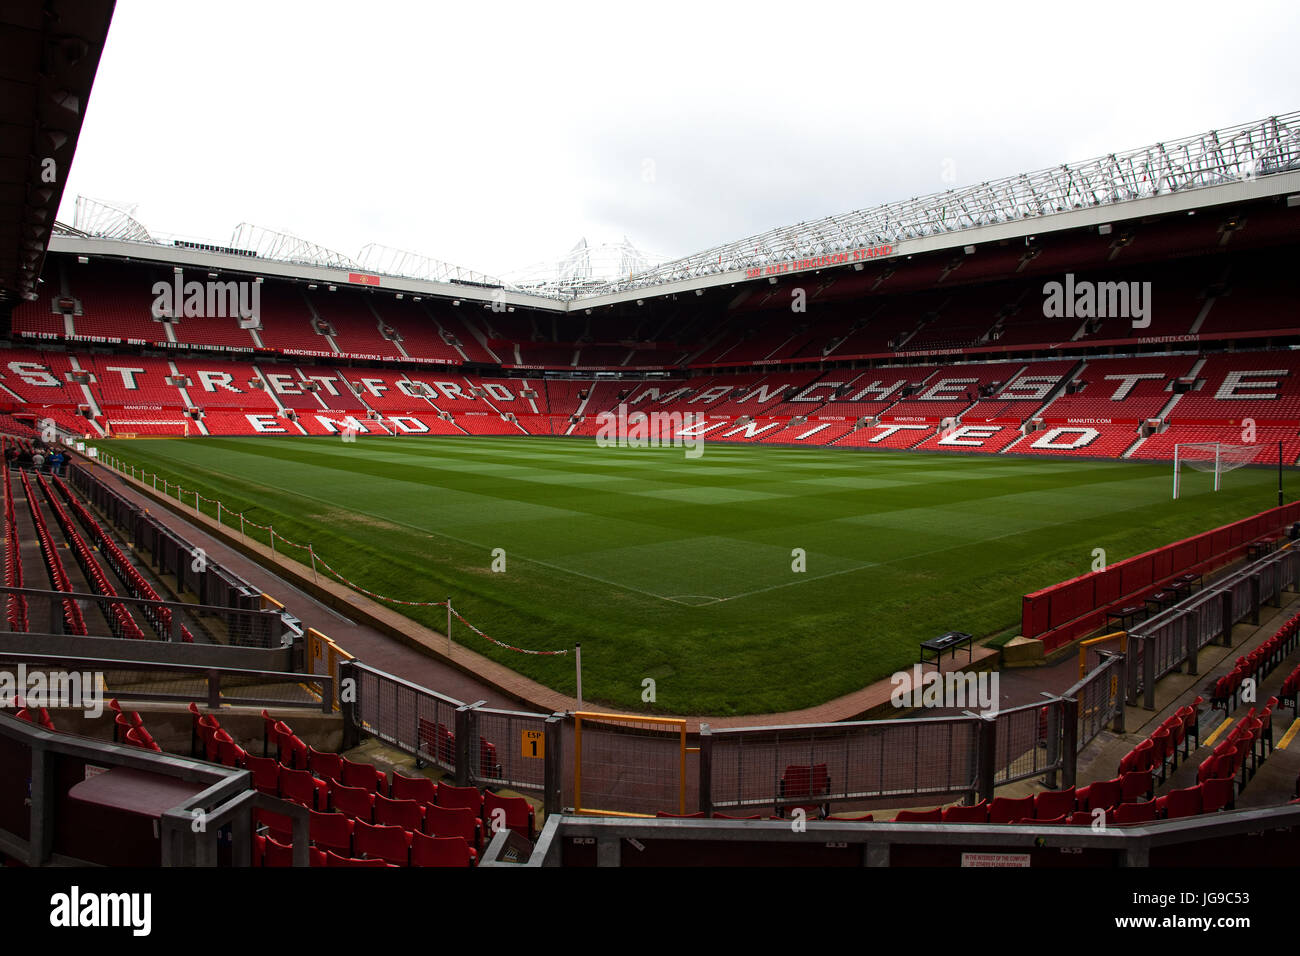 View inside Manchester United football stadium - Stock Image